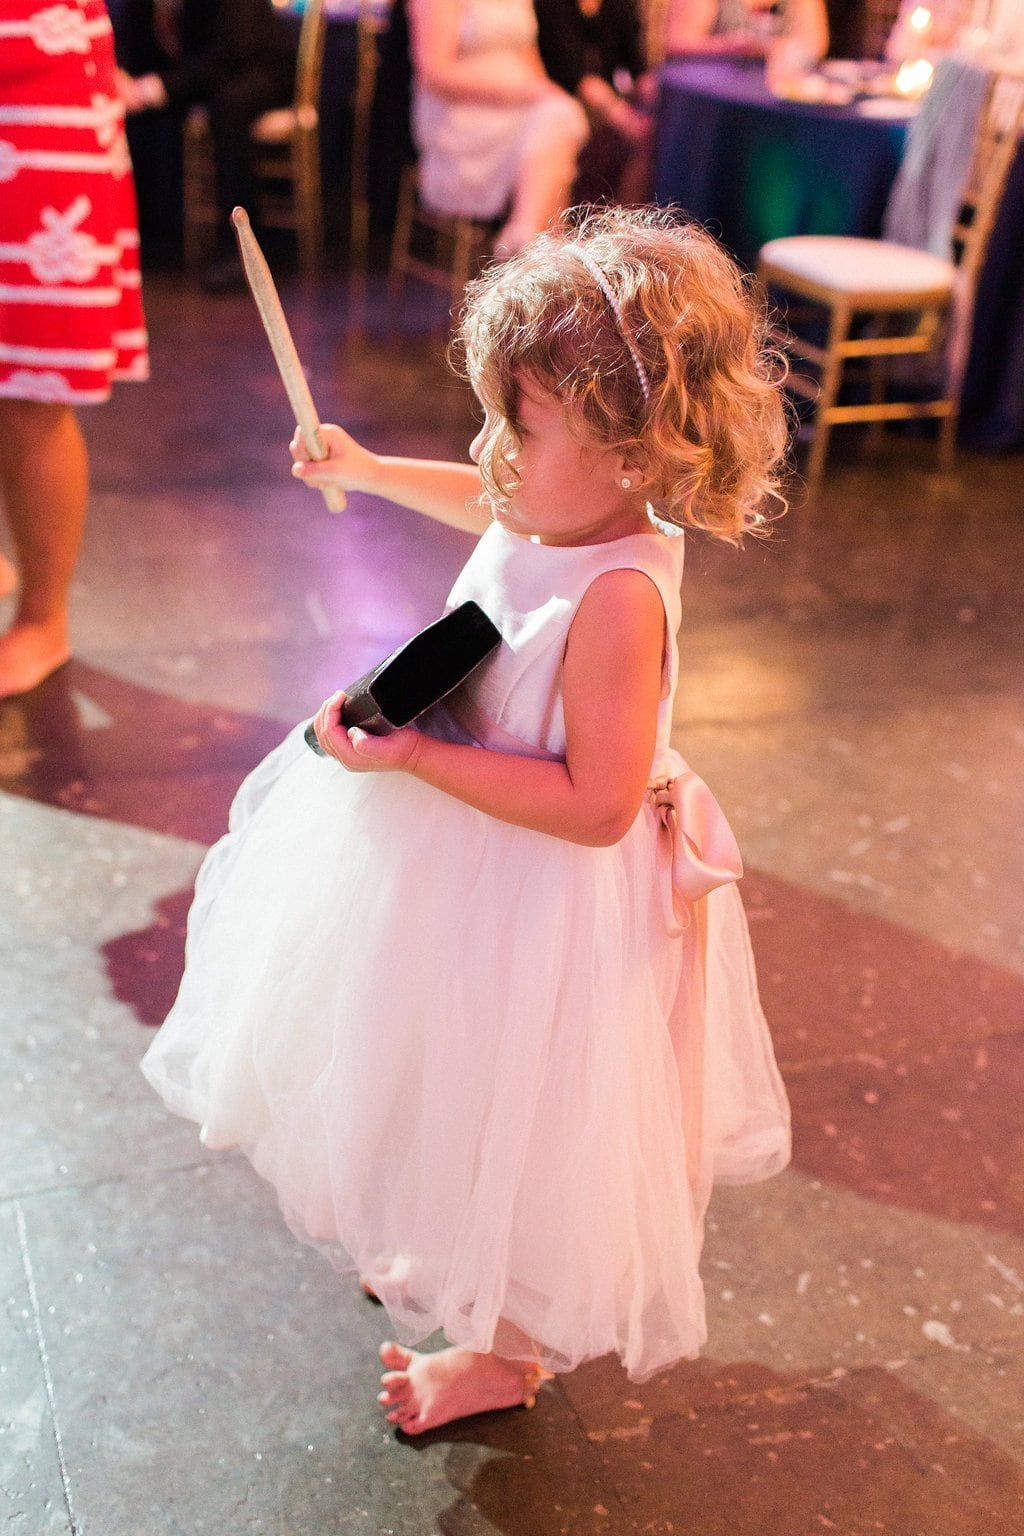 Little girl dancing at wedding reception